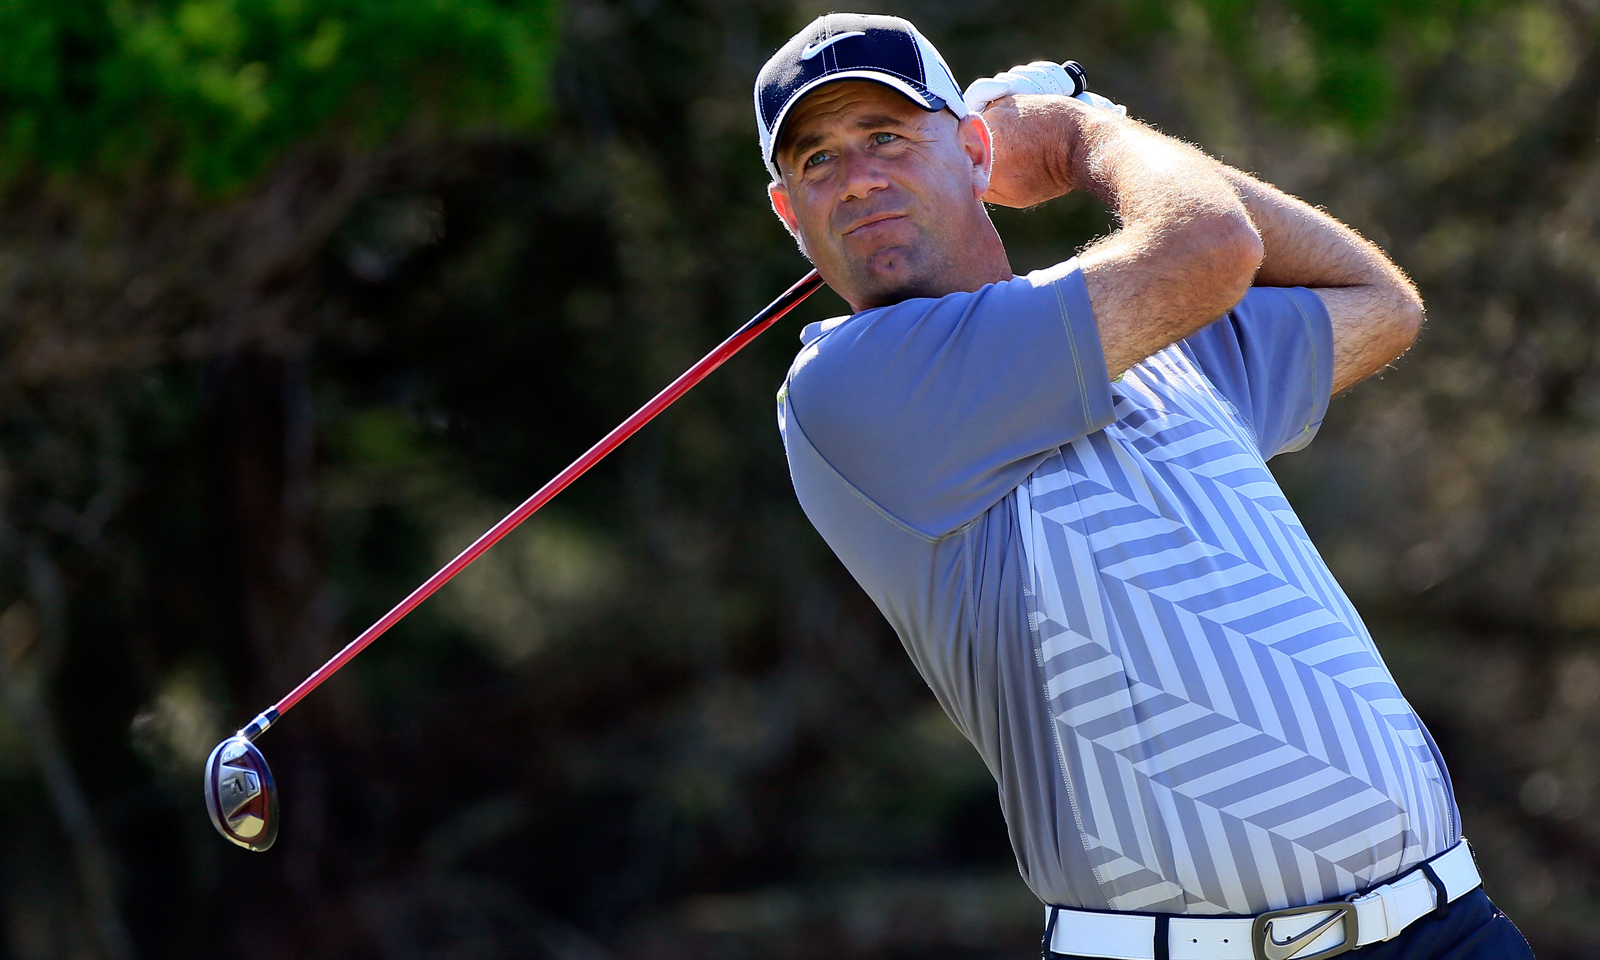 Stewart Cink previews TPC Sugarloaf's freshly spruced up Pines course in an exclusive gallery showcase event